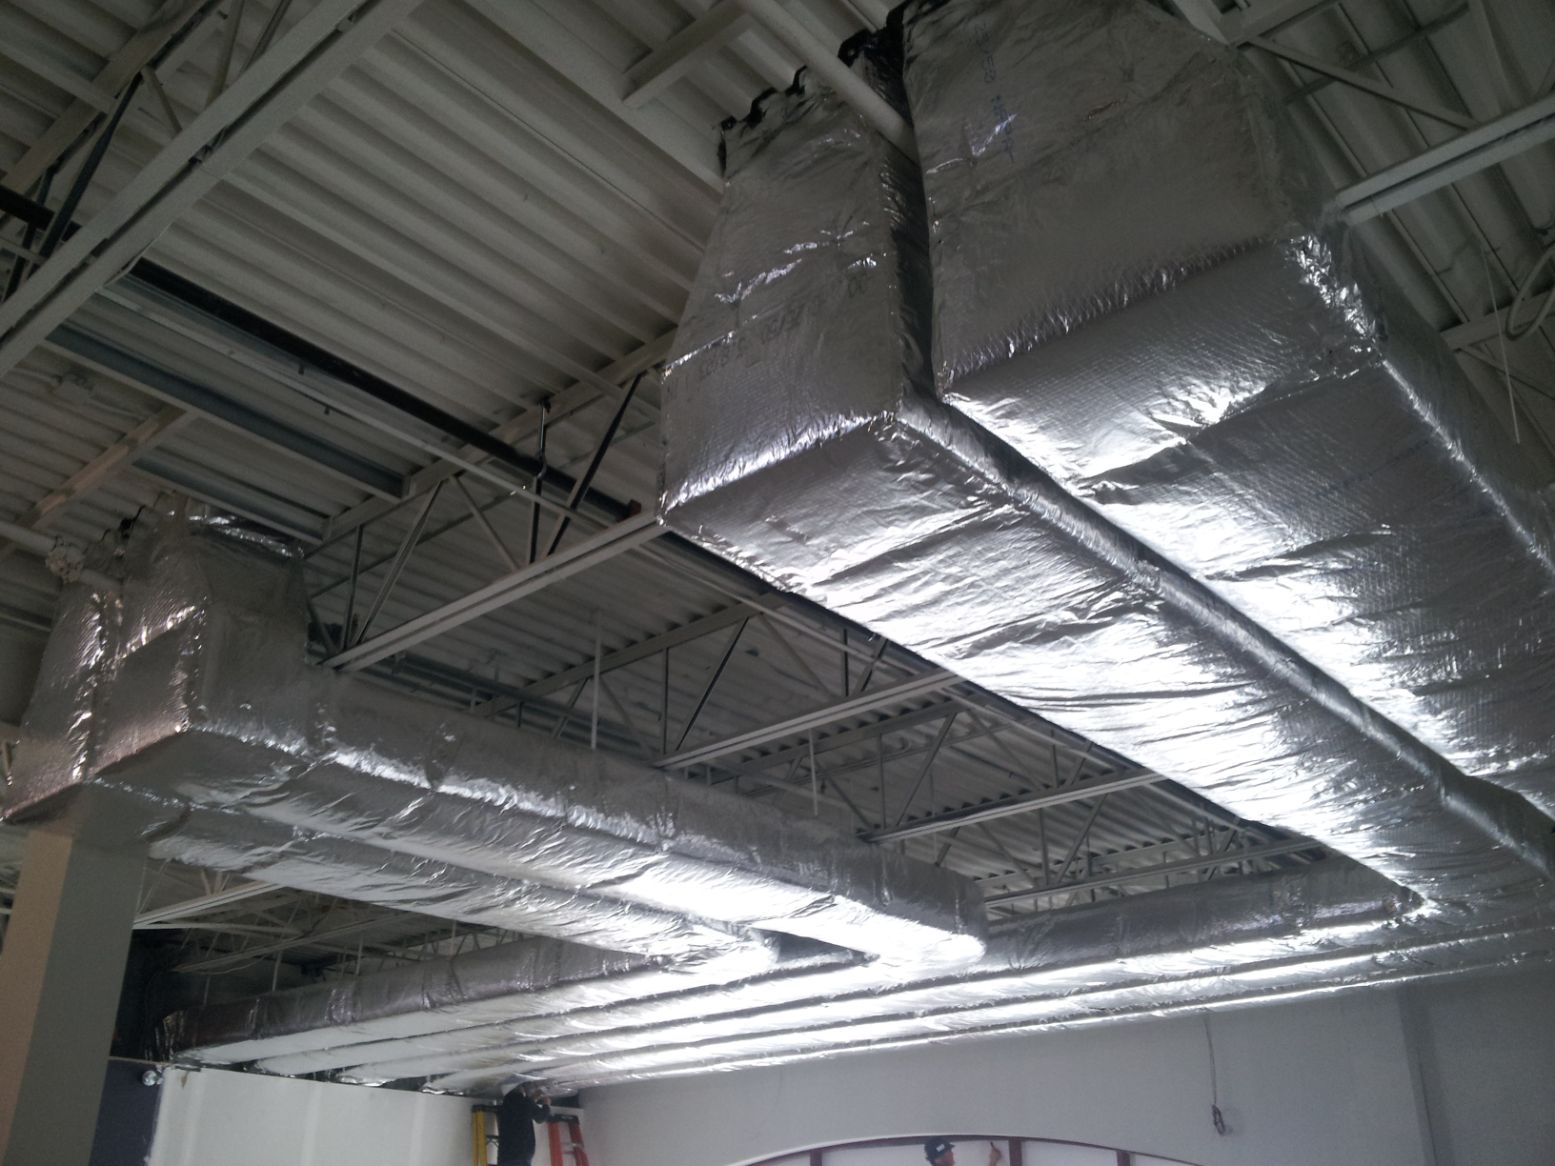 View of air conditioning duct